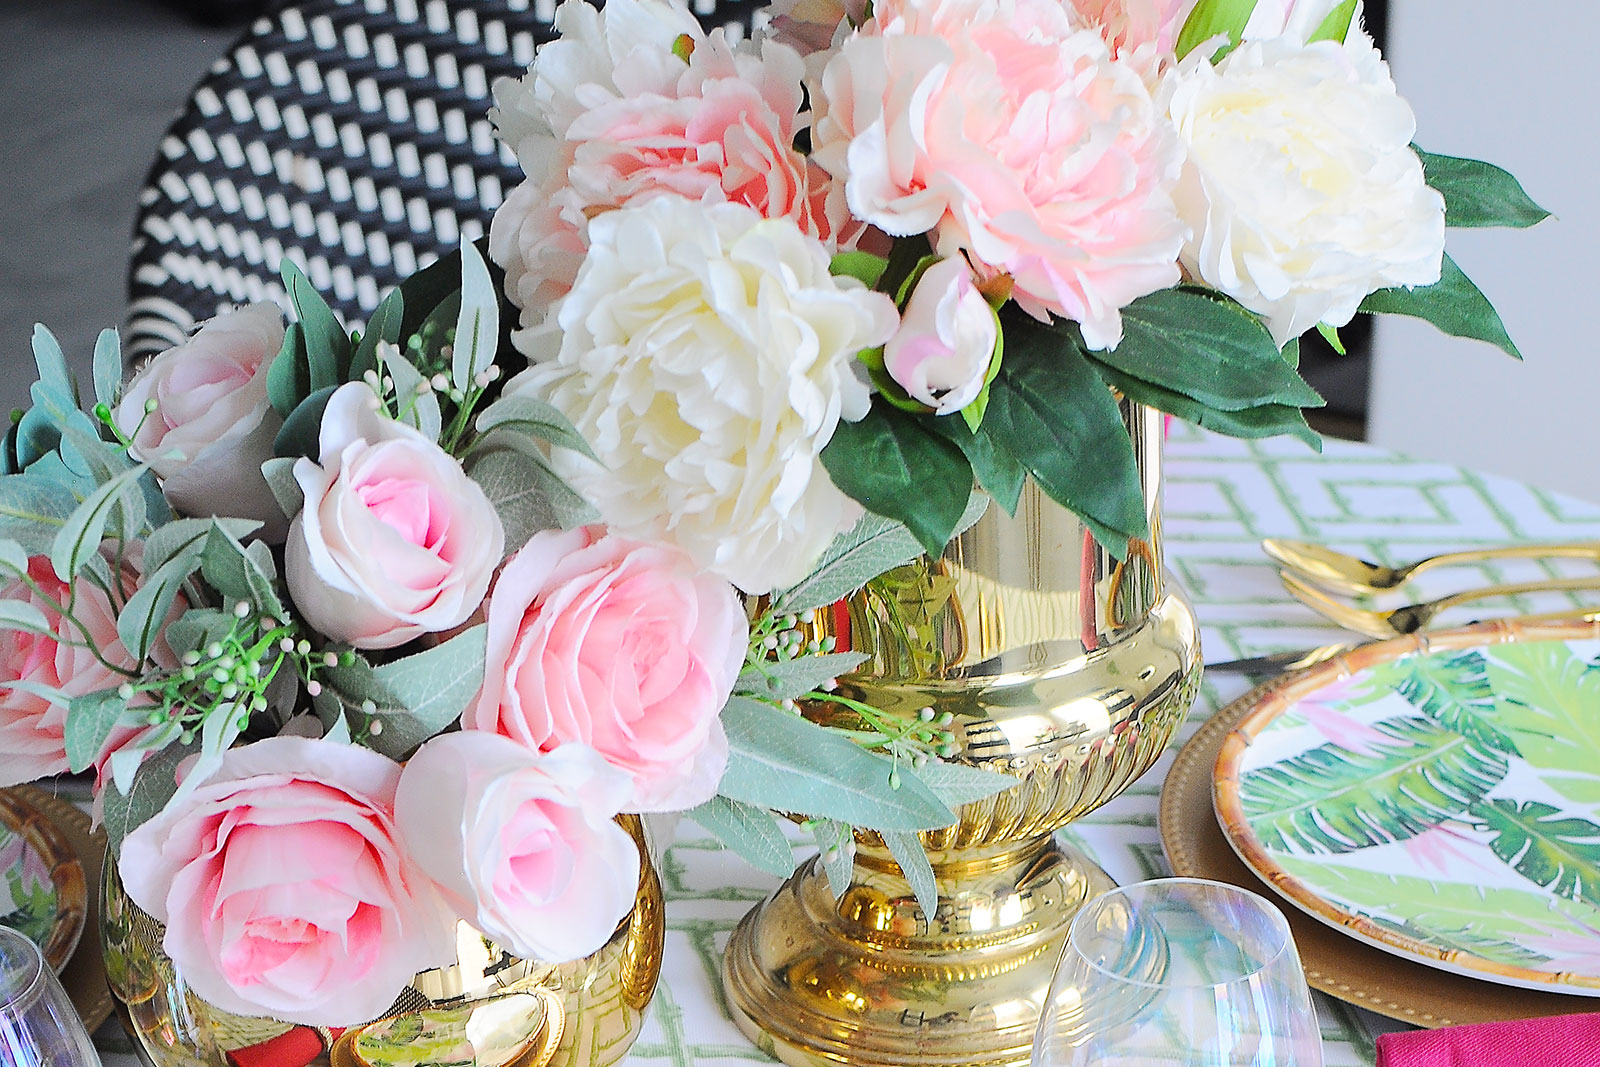 A chic and preppy green, pink and gold chinoiserie inspired tablescape. I love the bamboo touches and tobacco leaf teapot!